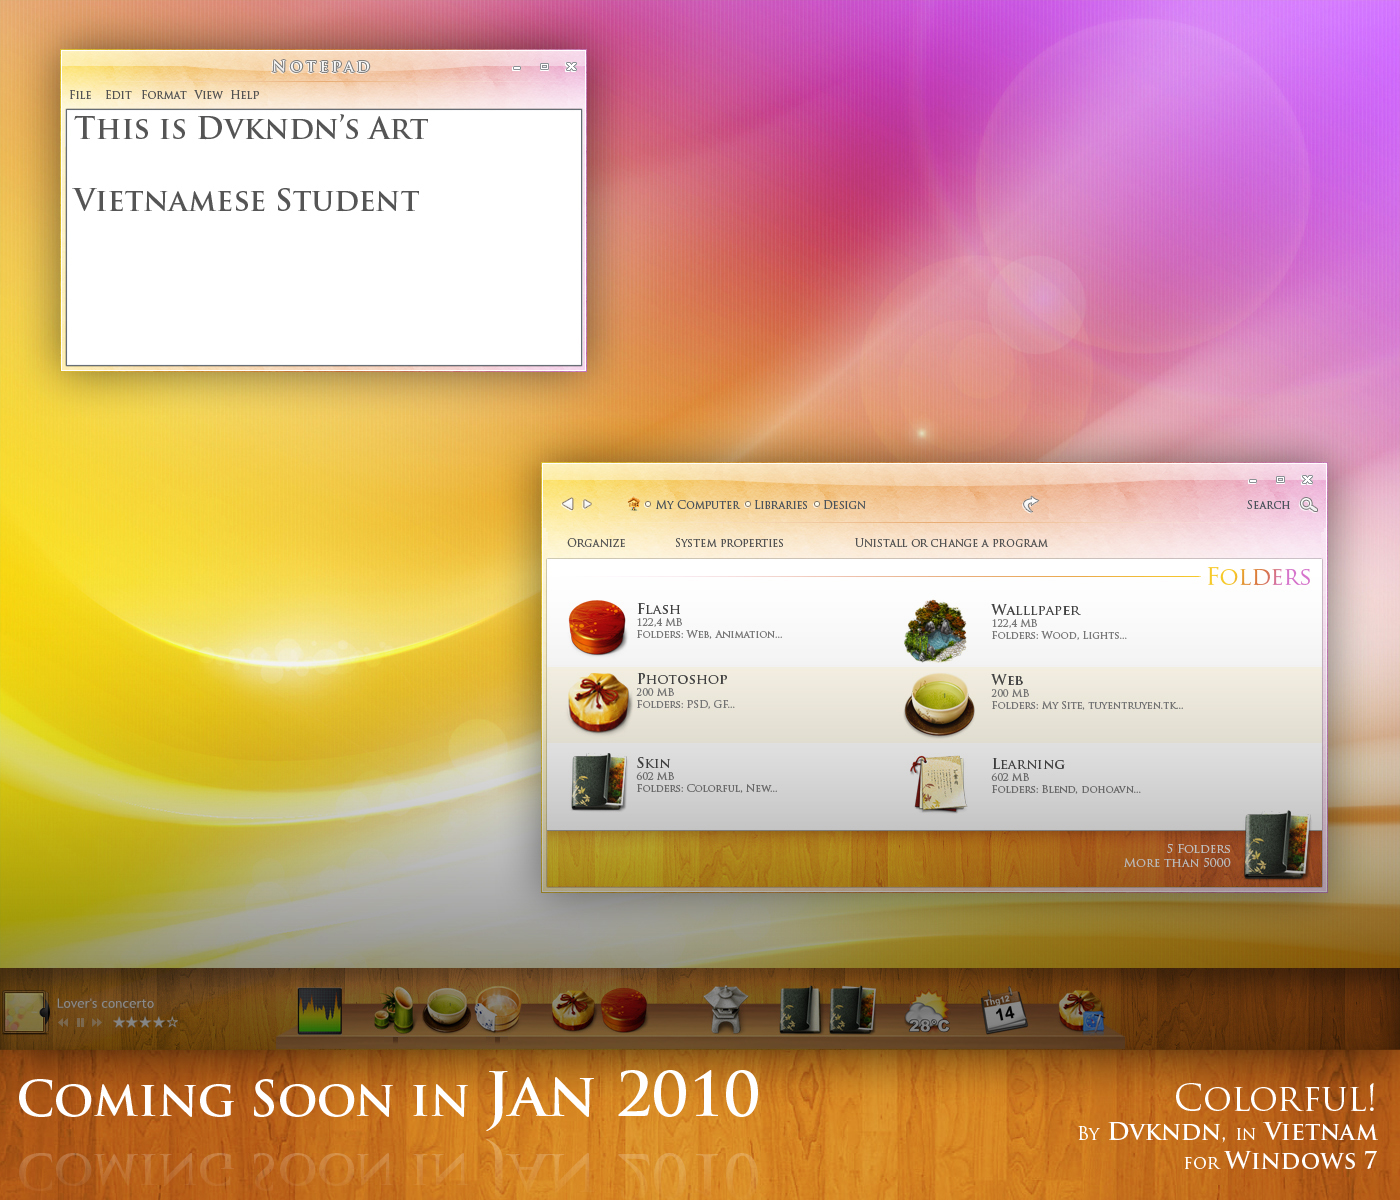 Colorful for Windows 7